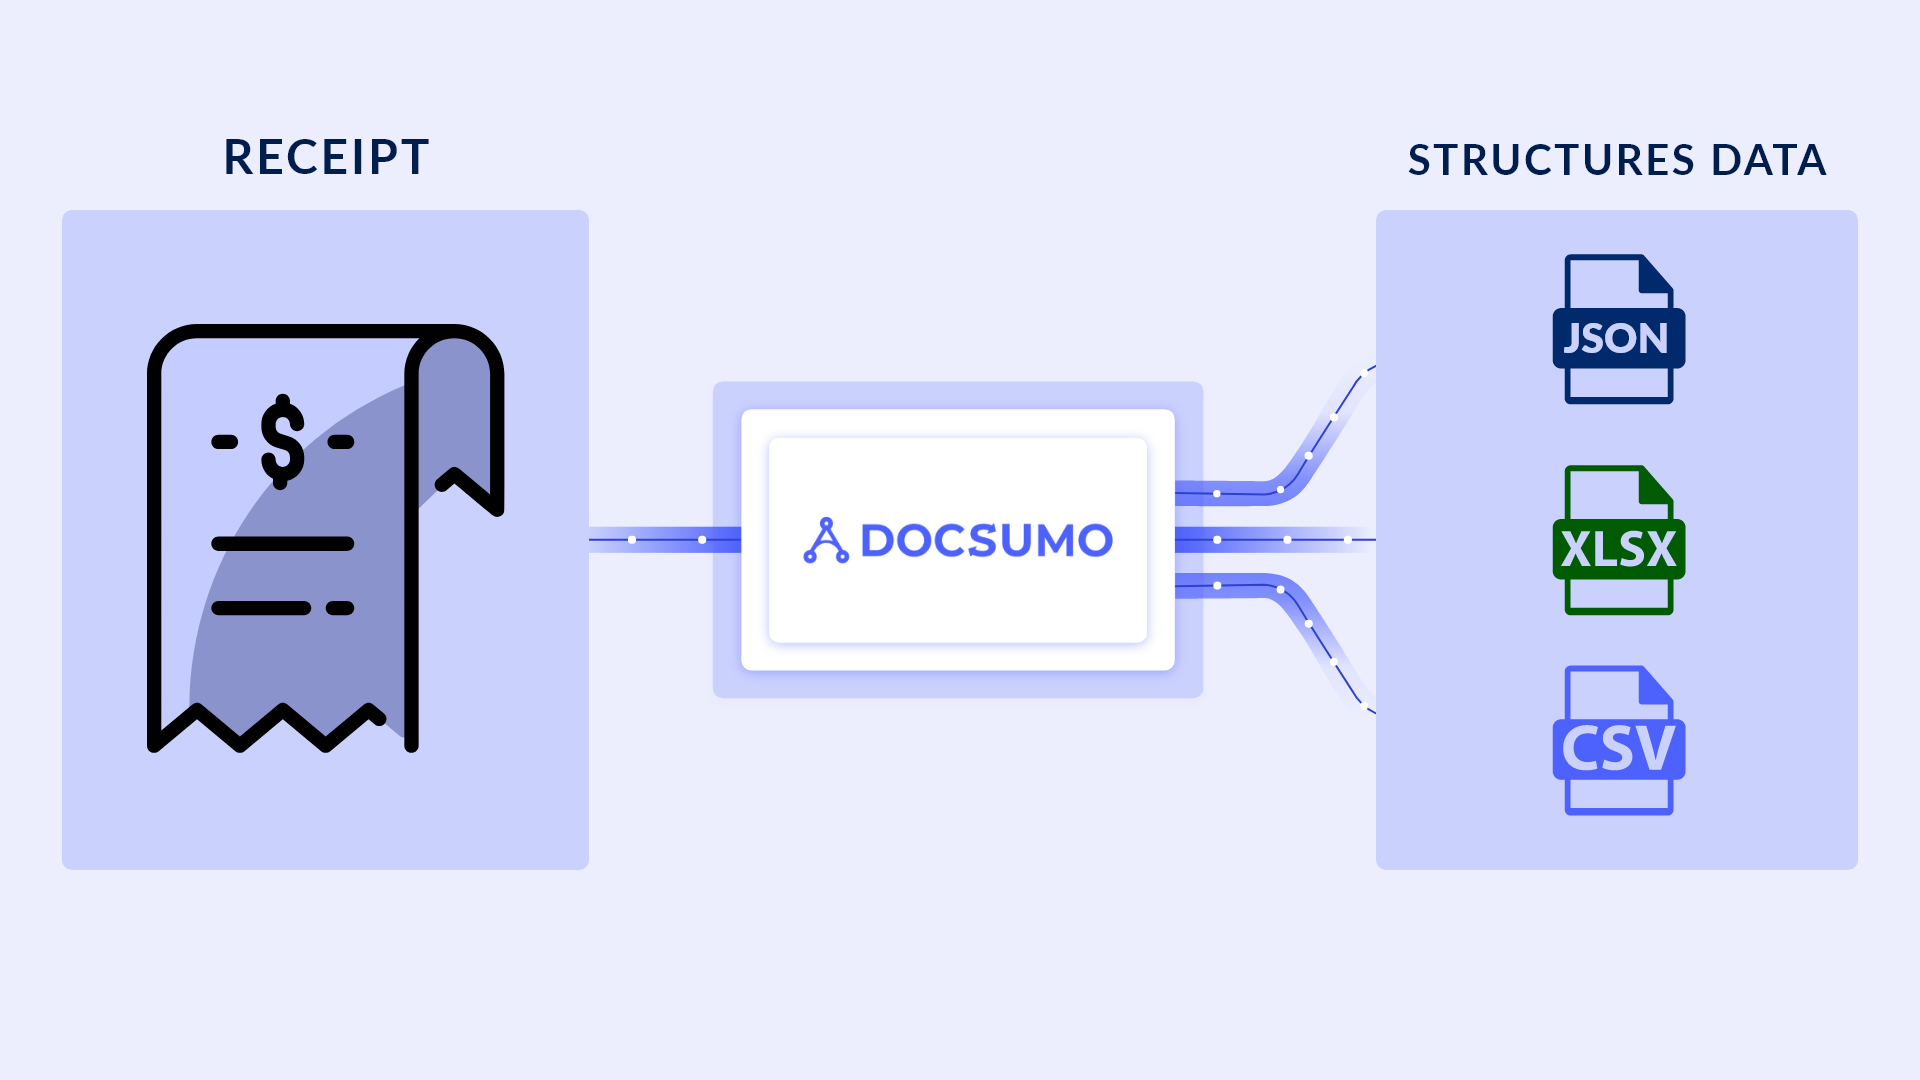 How to Automatically Capture and Process Data from Receipts